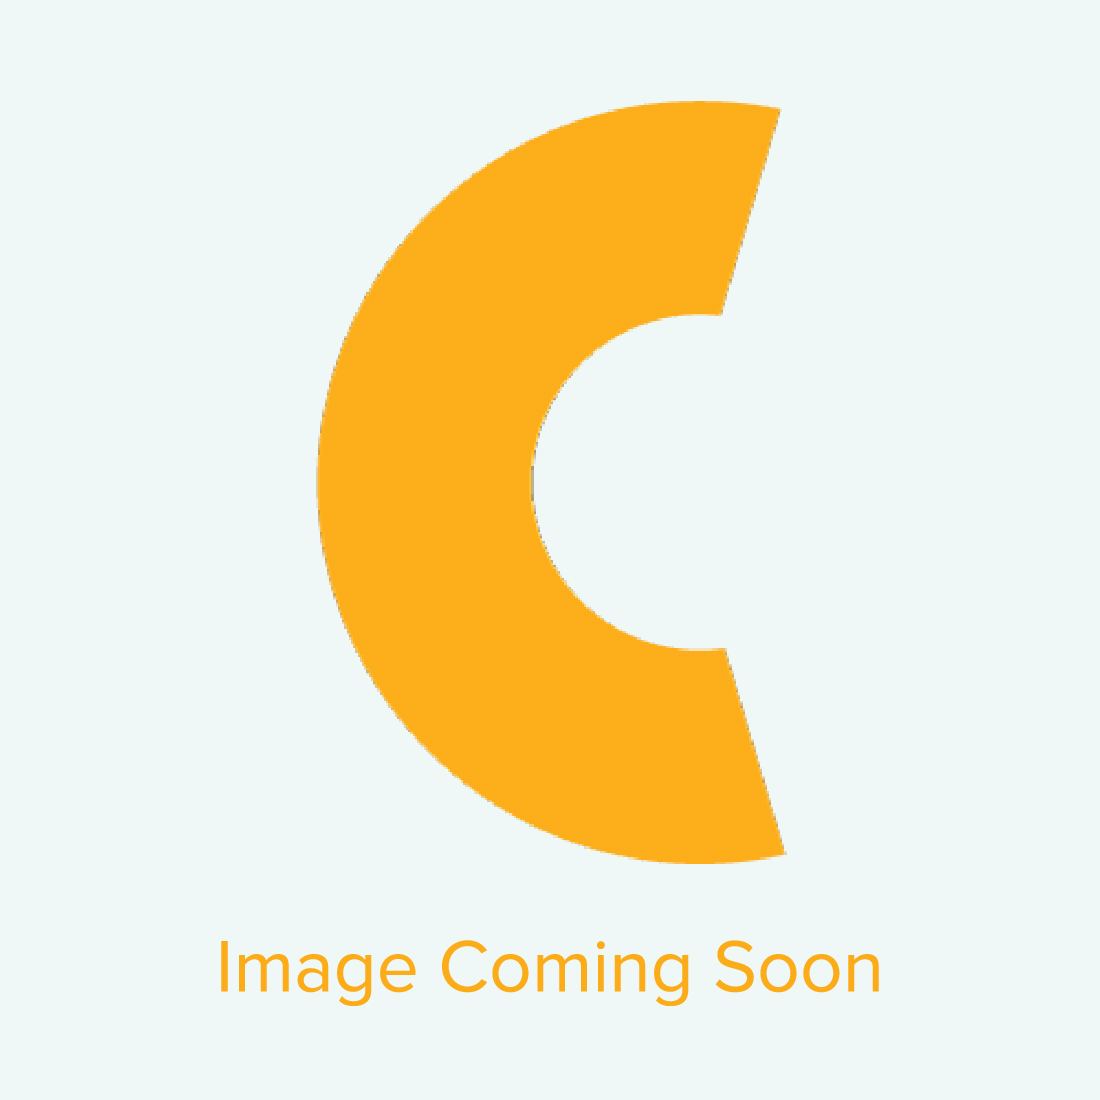 Stainless Steel Sublimation Hip Flask - 8oz.